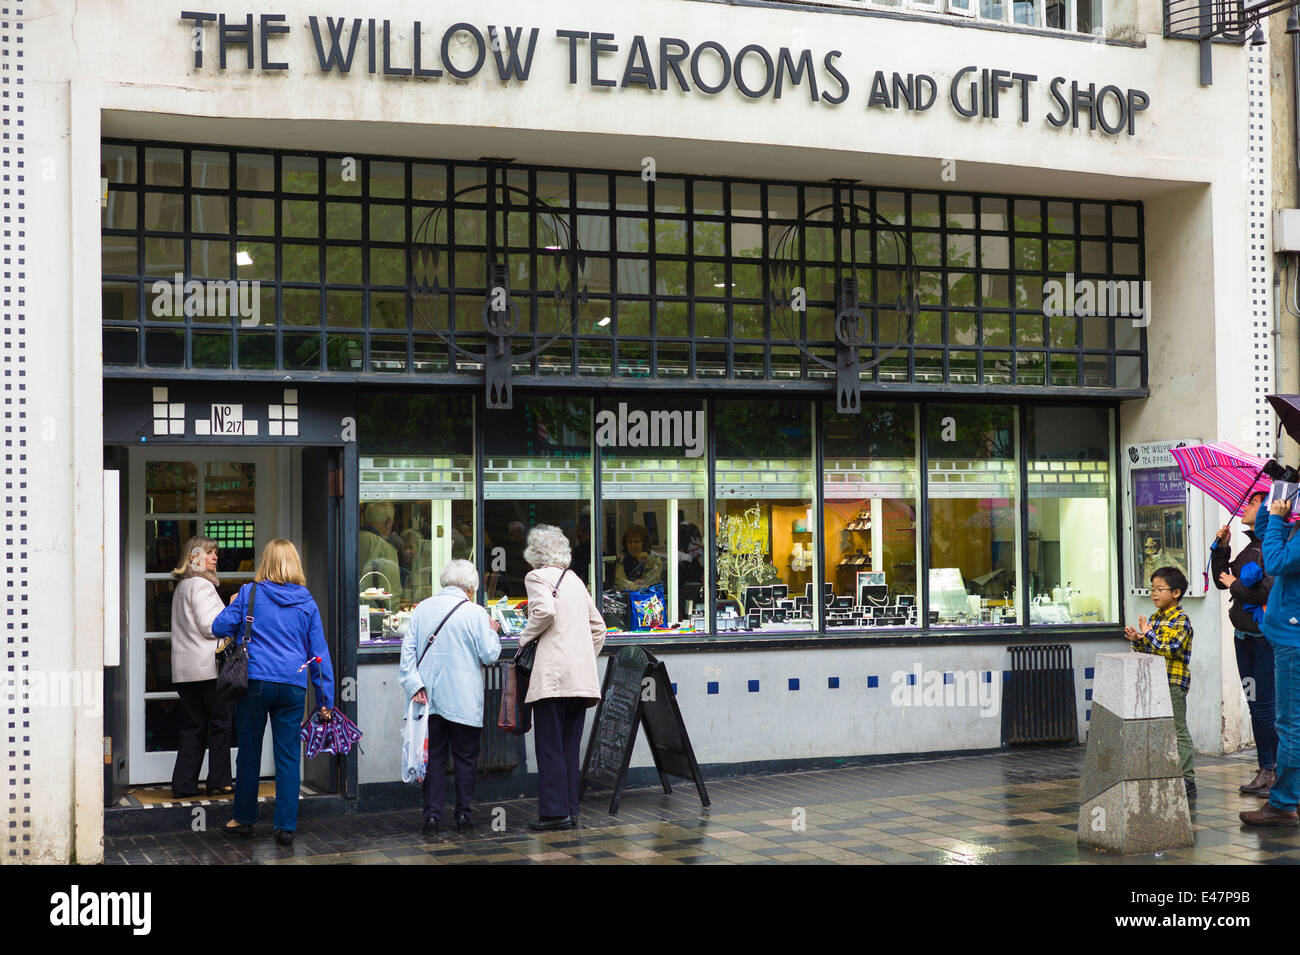 The Willow Tearooms and Gift Shop designed by Charles Rennie Mackintosh in 1903 in Sauciehall Street, Glasgow, SCOTLAND, UK